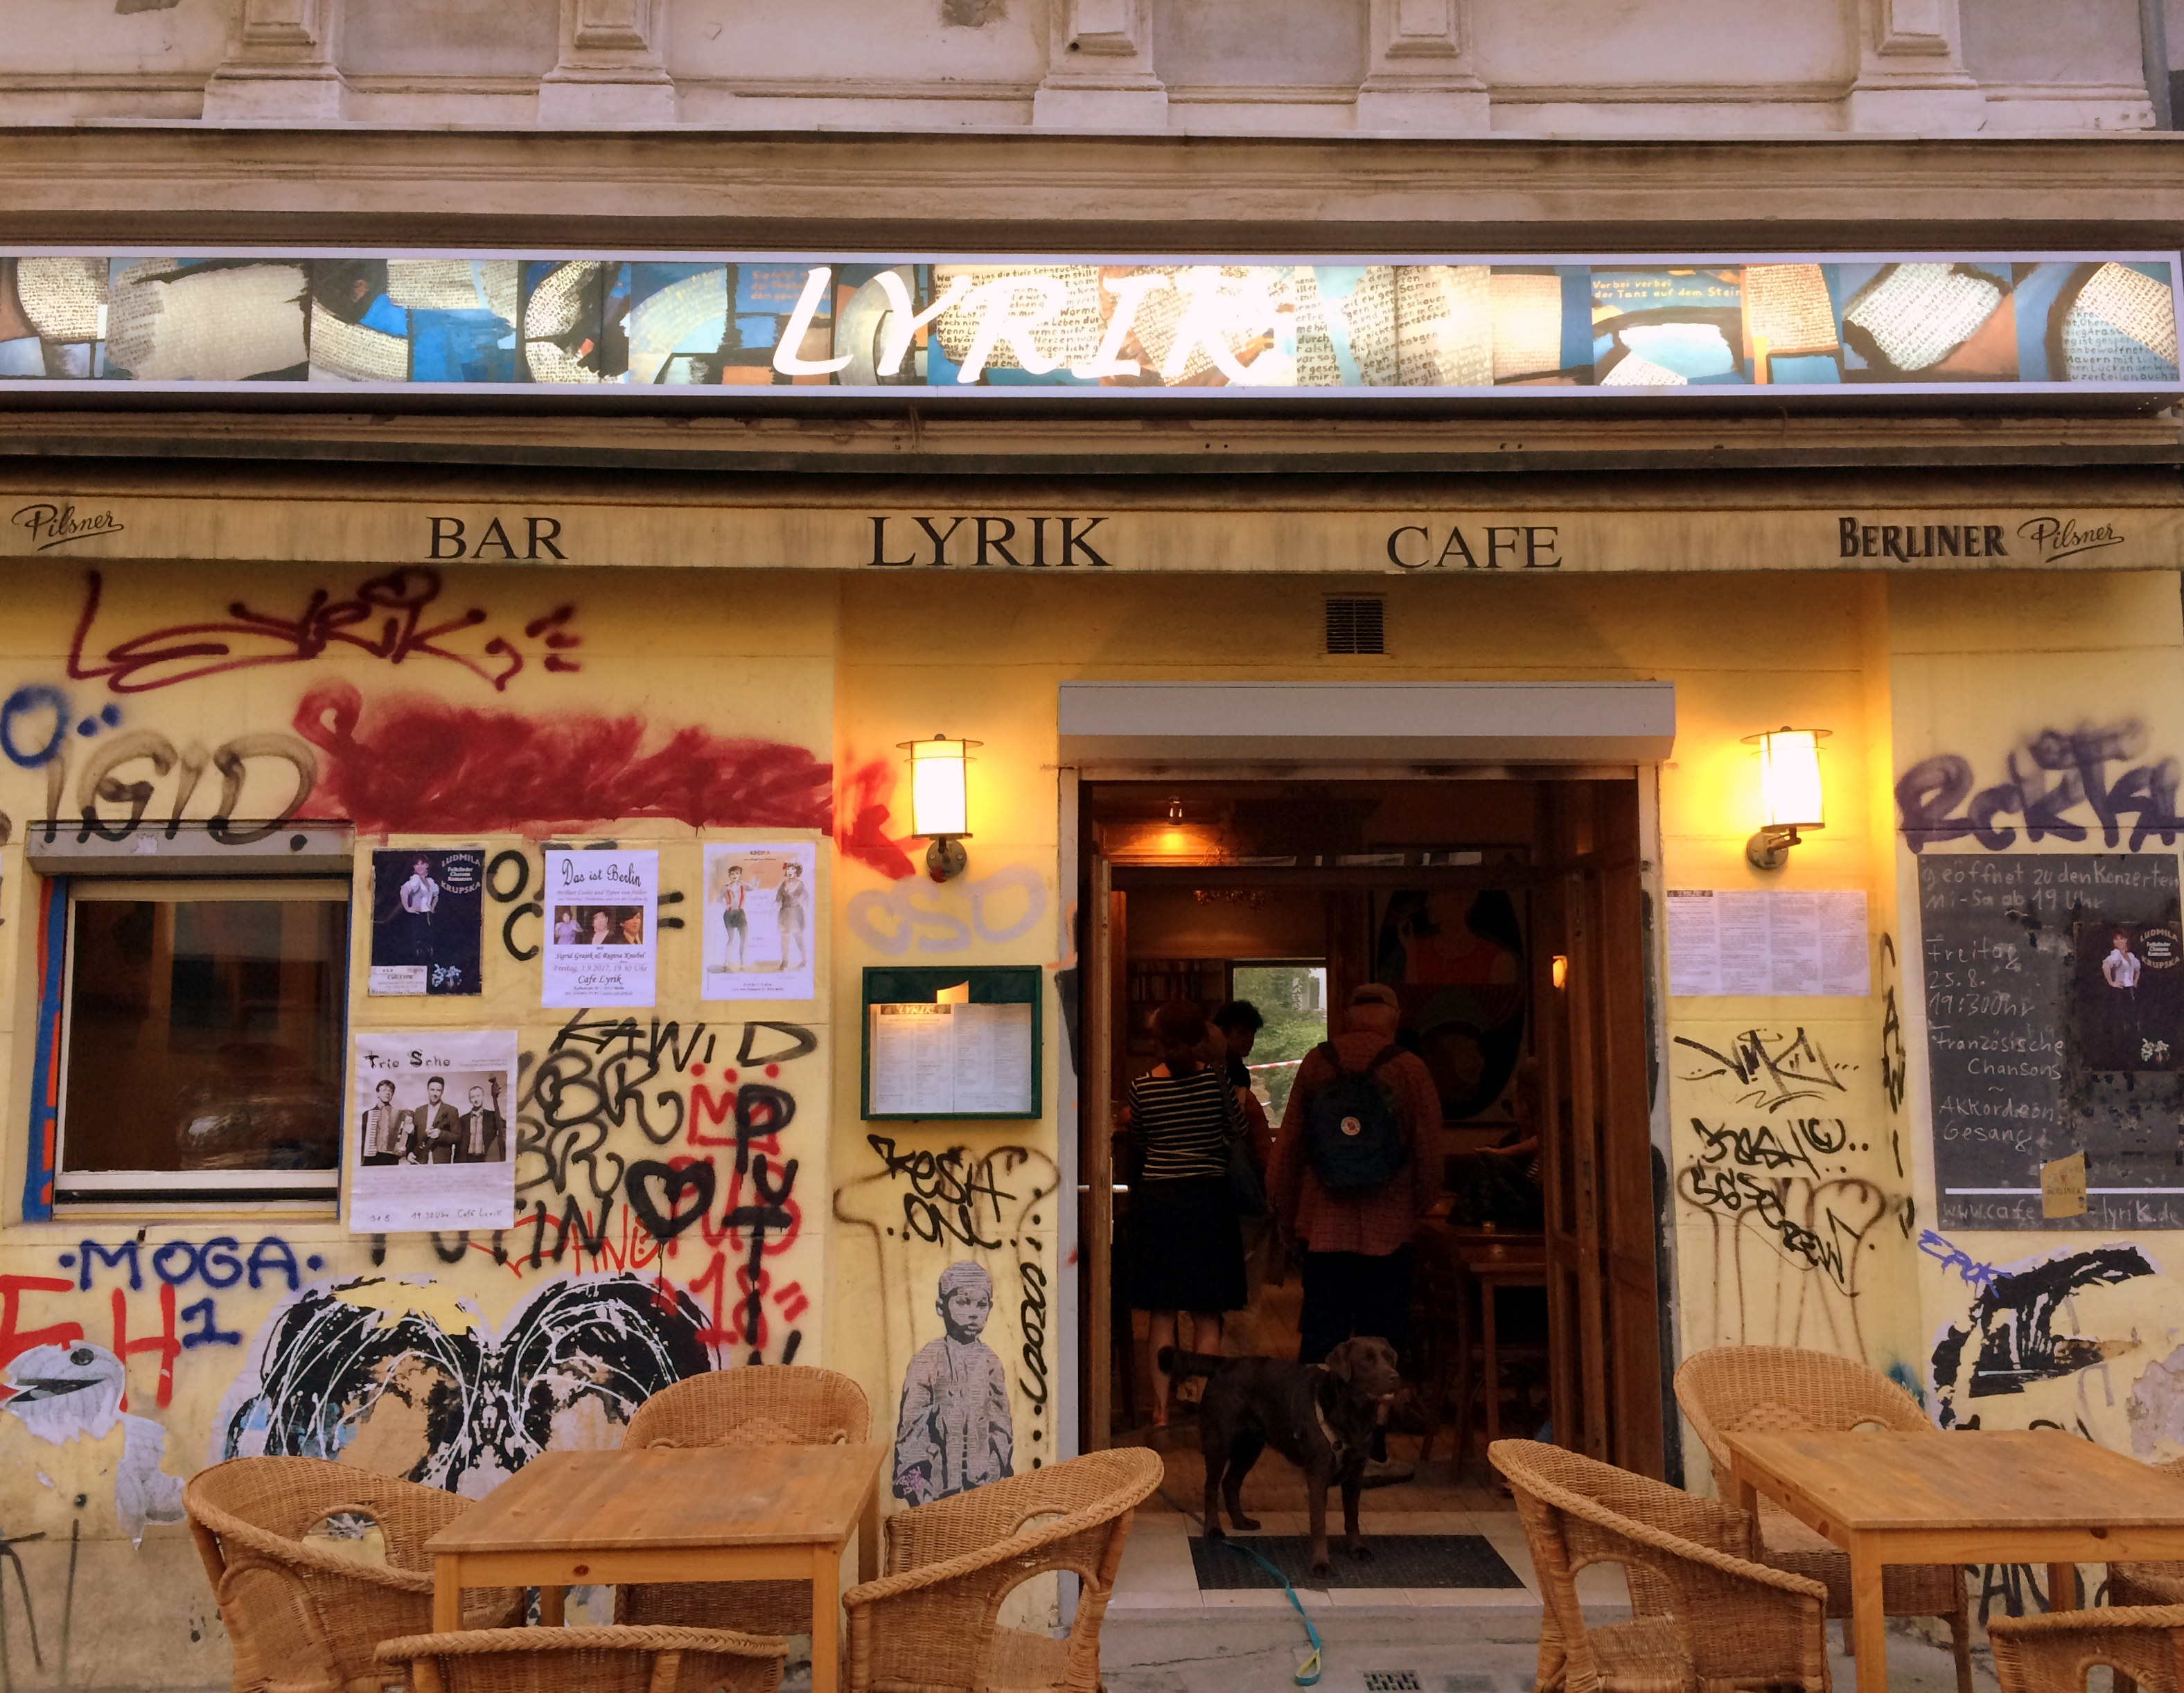 cafe lyrik berlin bar